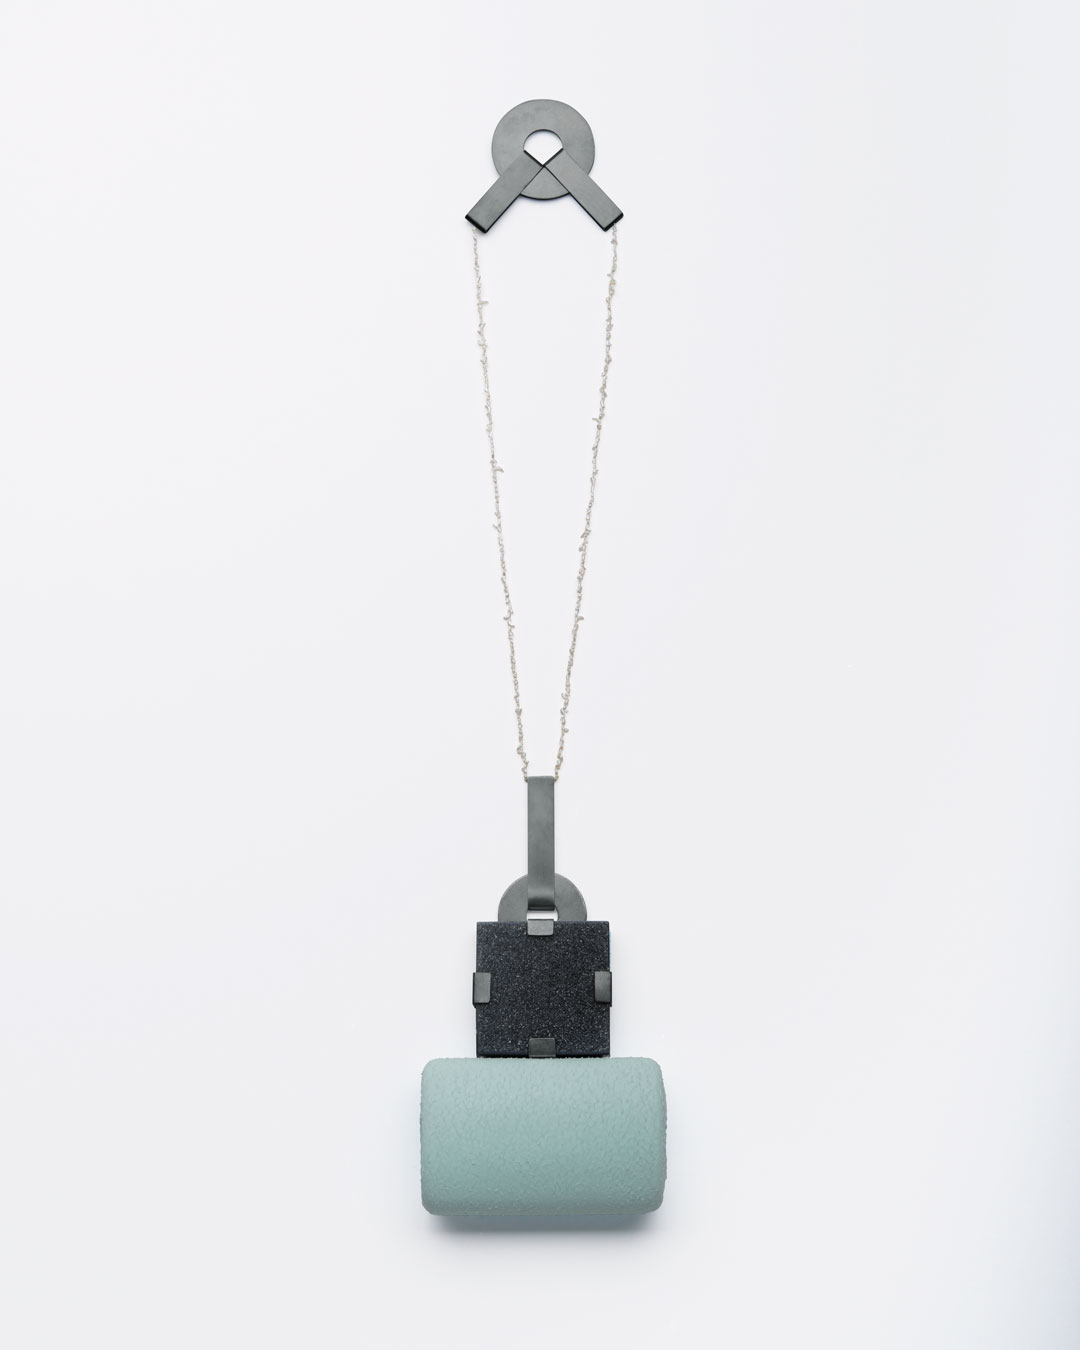 Ute Eitzenhöfer, untitled, 2013, necklace; agate, pearls, oxidised silver, plastic (from packaging), 300 x 300 x 30 mm, €3000